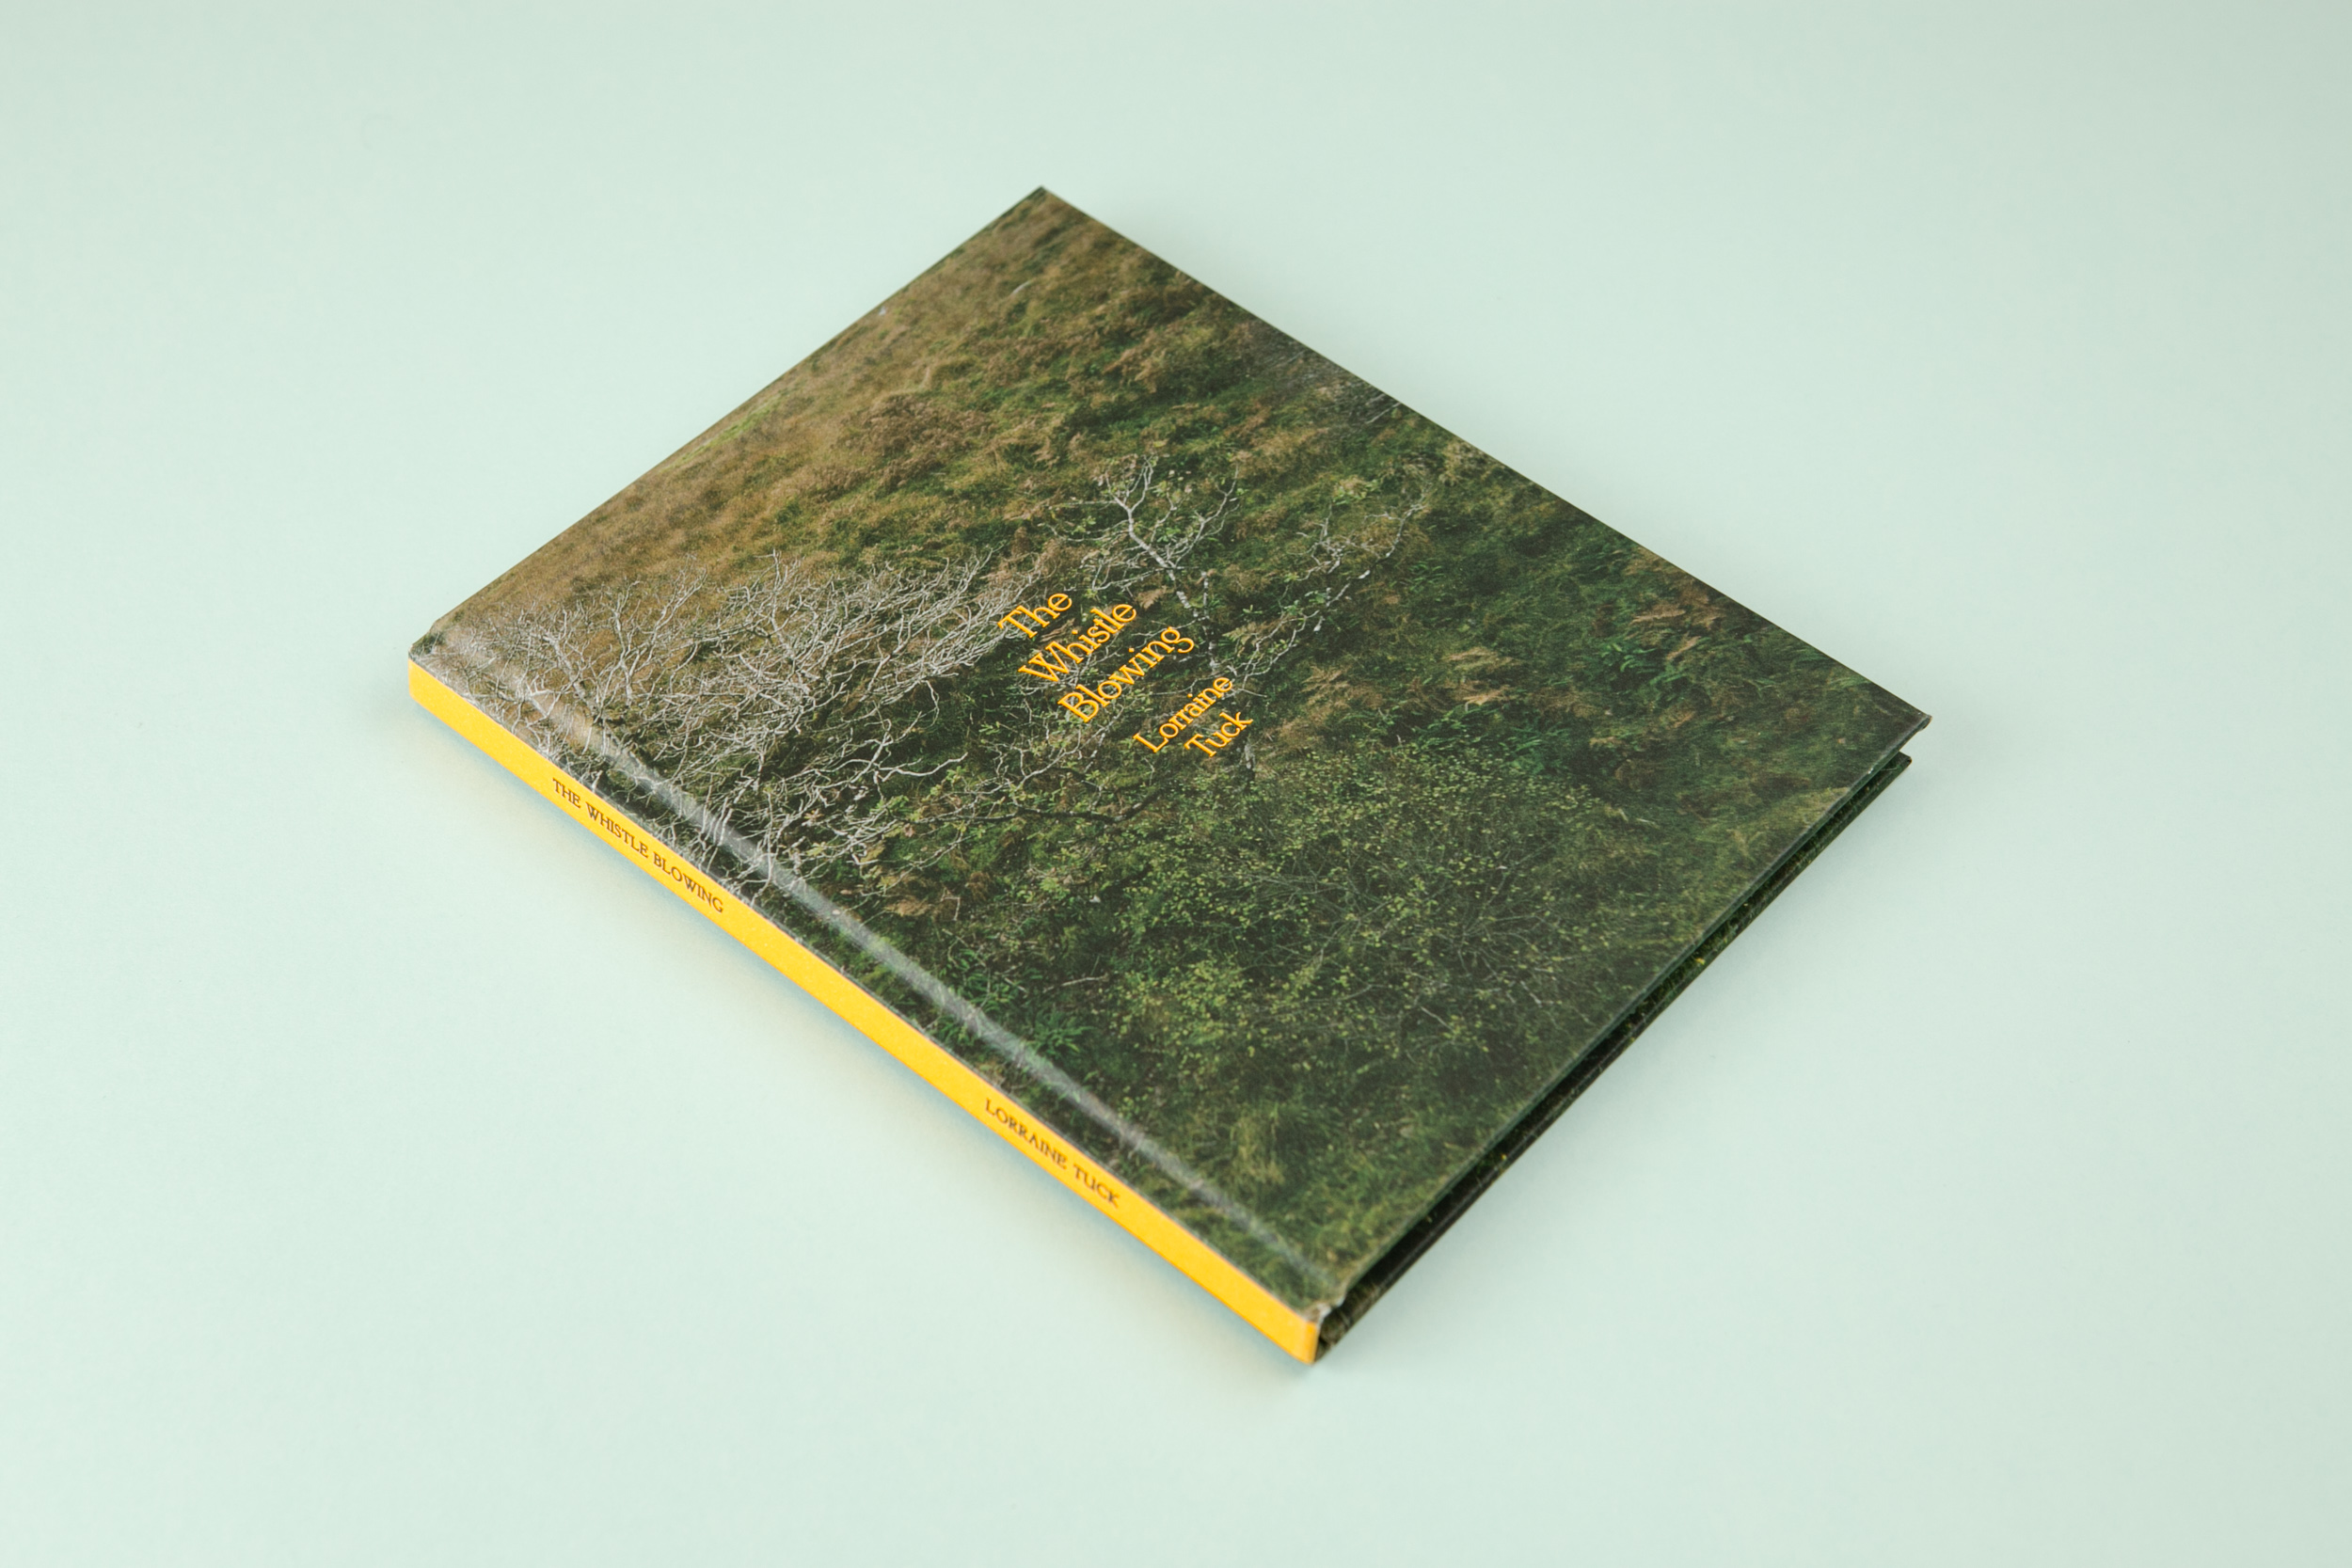 The Whistle Blowing a photobook with photography by Lorraine Tuck and Design by Read That Image Collective